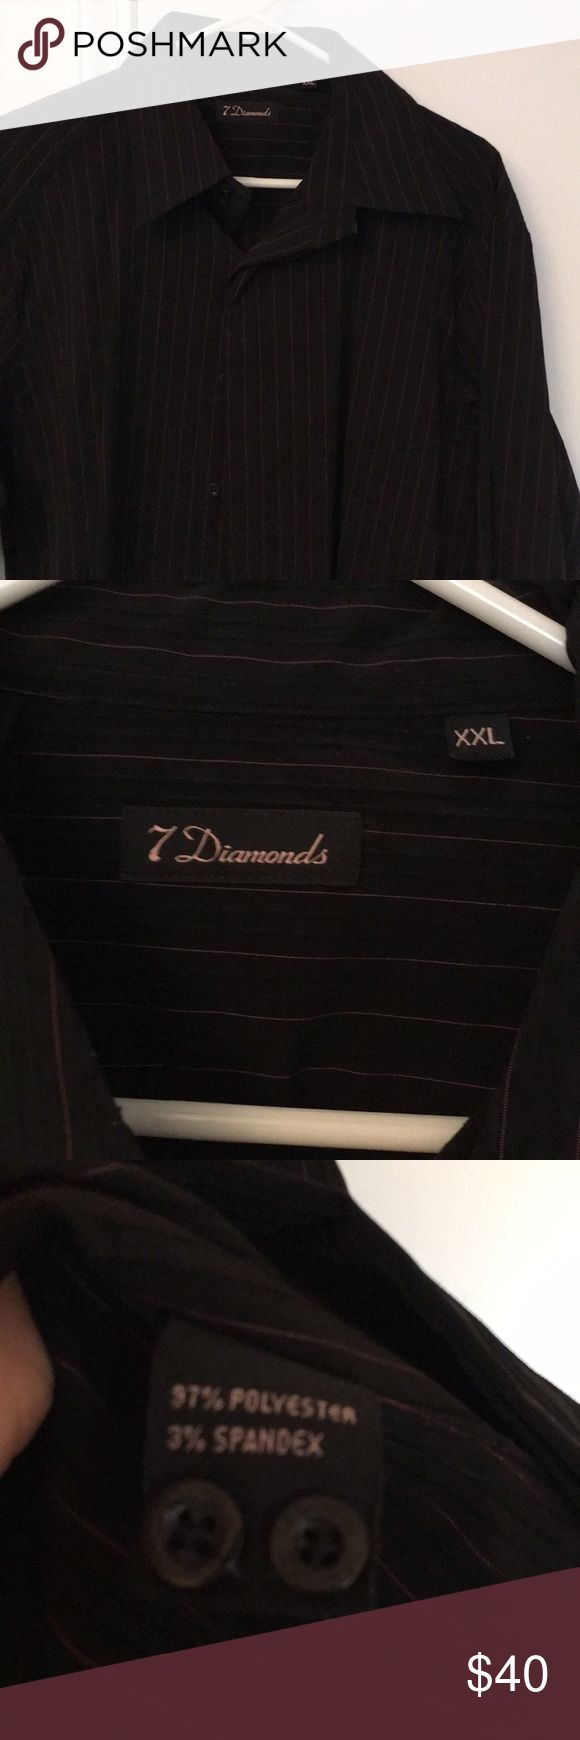 Black 7 Diamonds Dress Shirt with Pink pinstripes Black 7 Diamonds Dress Shirt with Pink pinstripes.  Worn a handful of times still great condition.  Pet & Smoke free Home! 7 Diamonds Shirts Dress Shirts